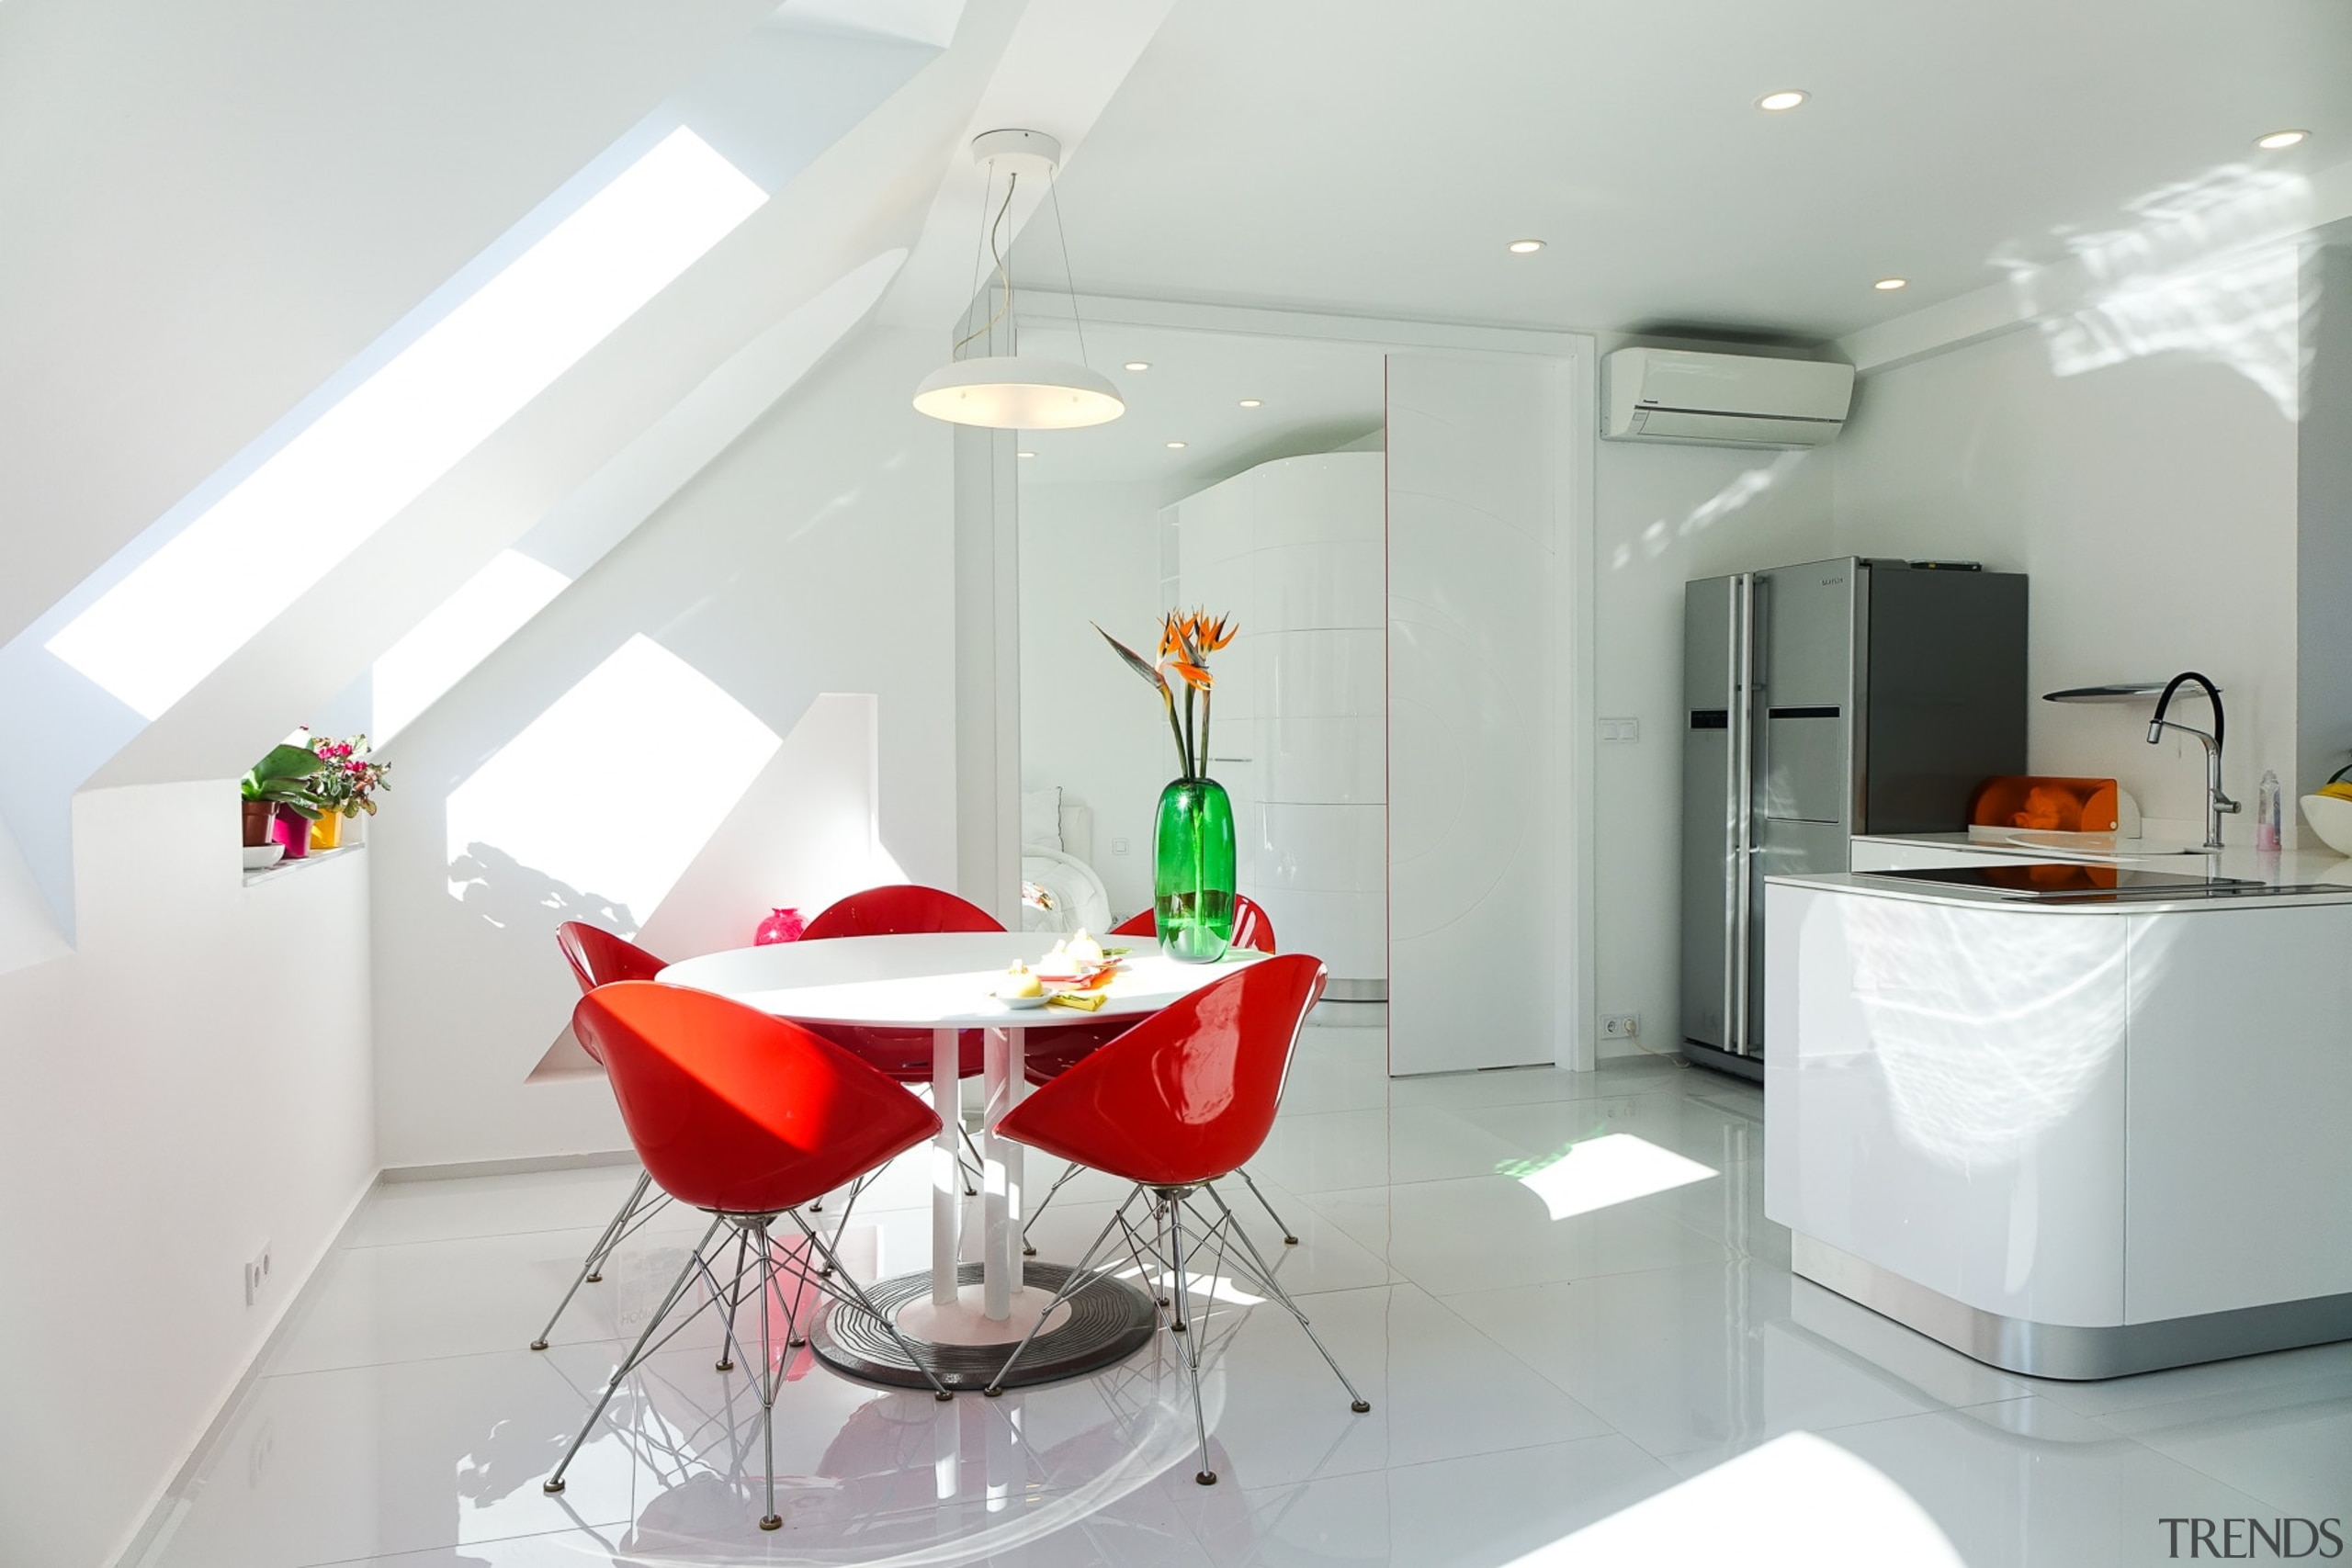 This dining area features a Leolux table, surrounded ceiling, furniture, interior design, product, property, room, table, gray, white